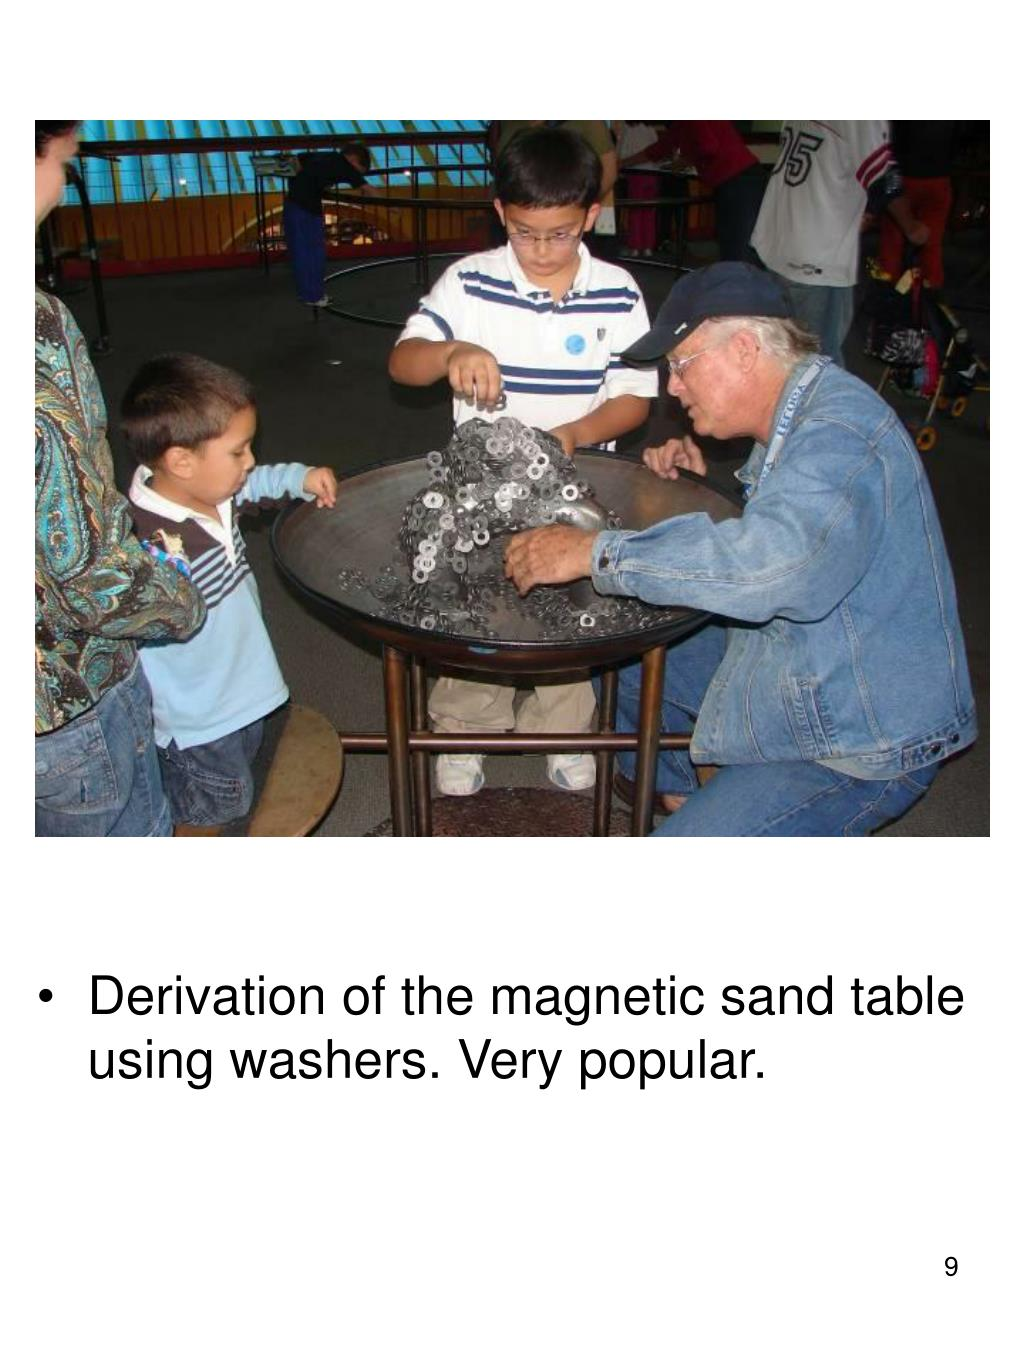 Derivation of the magnetic sand table using washers. Very popular.